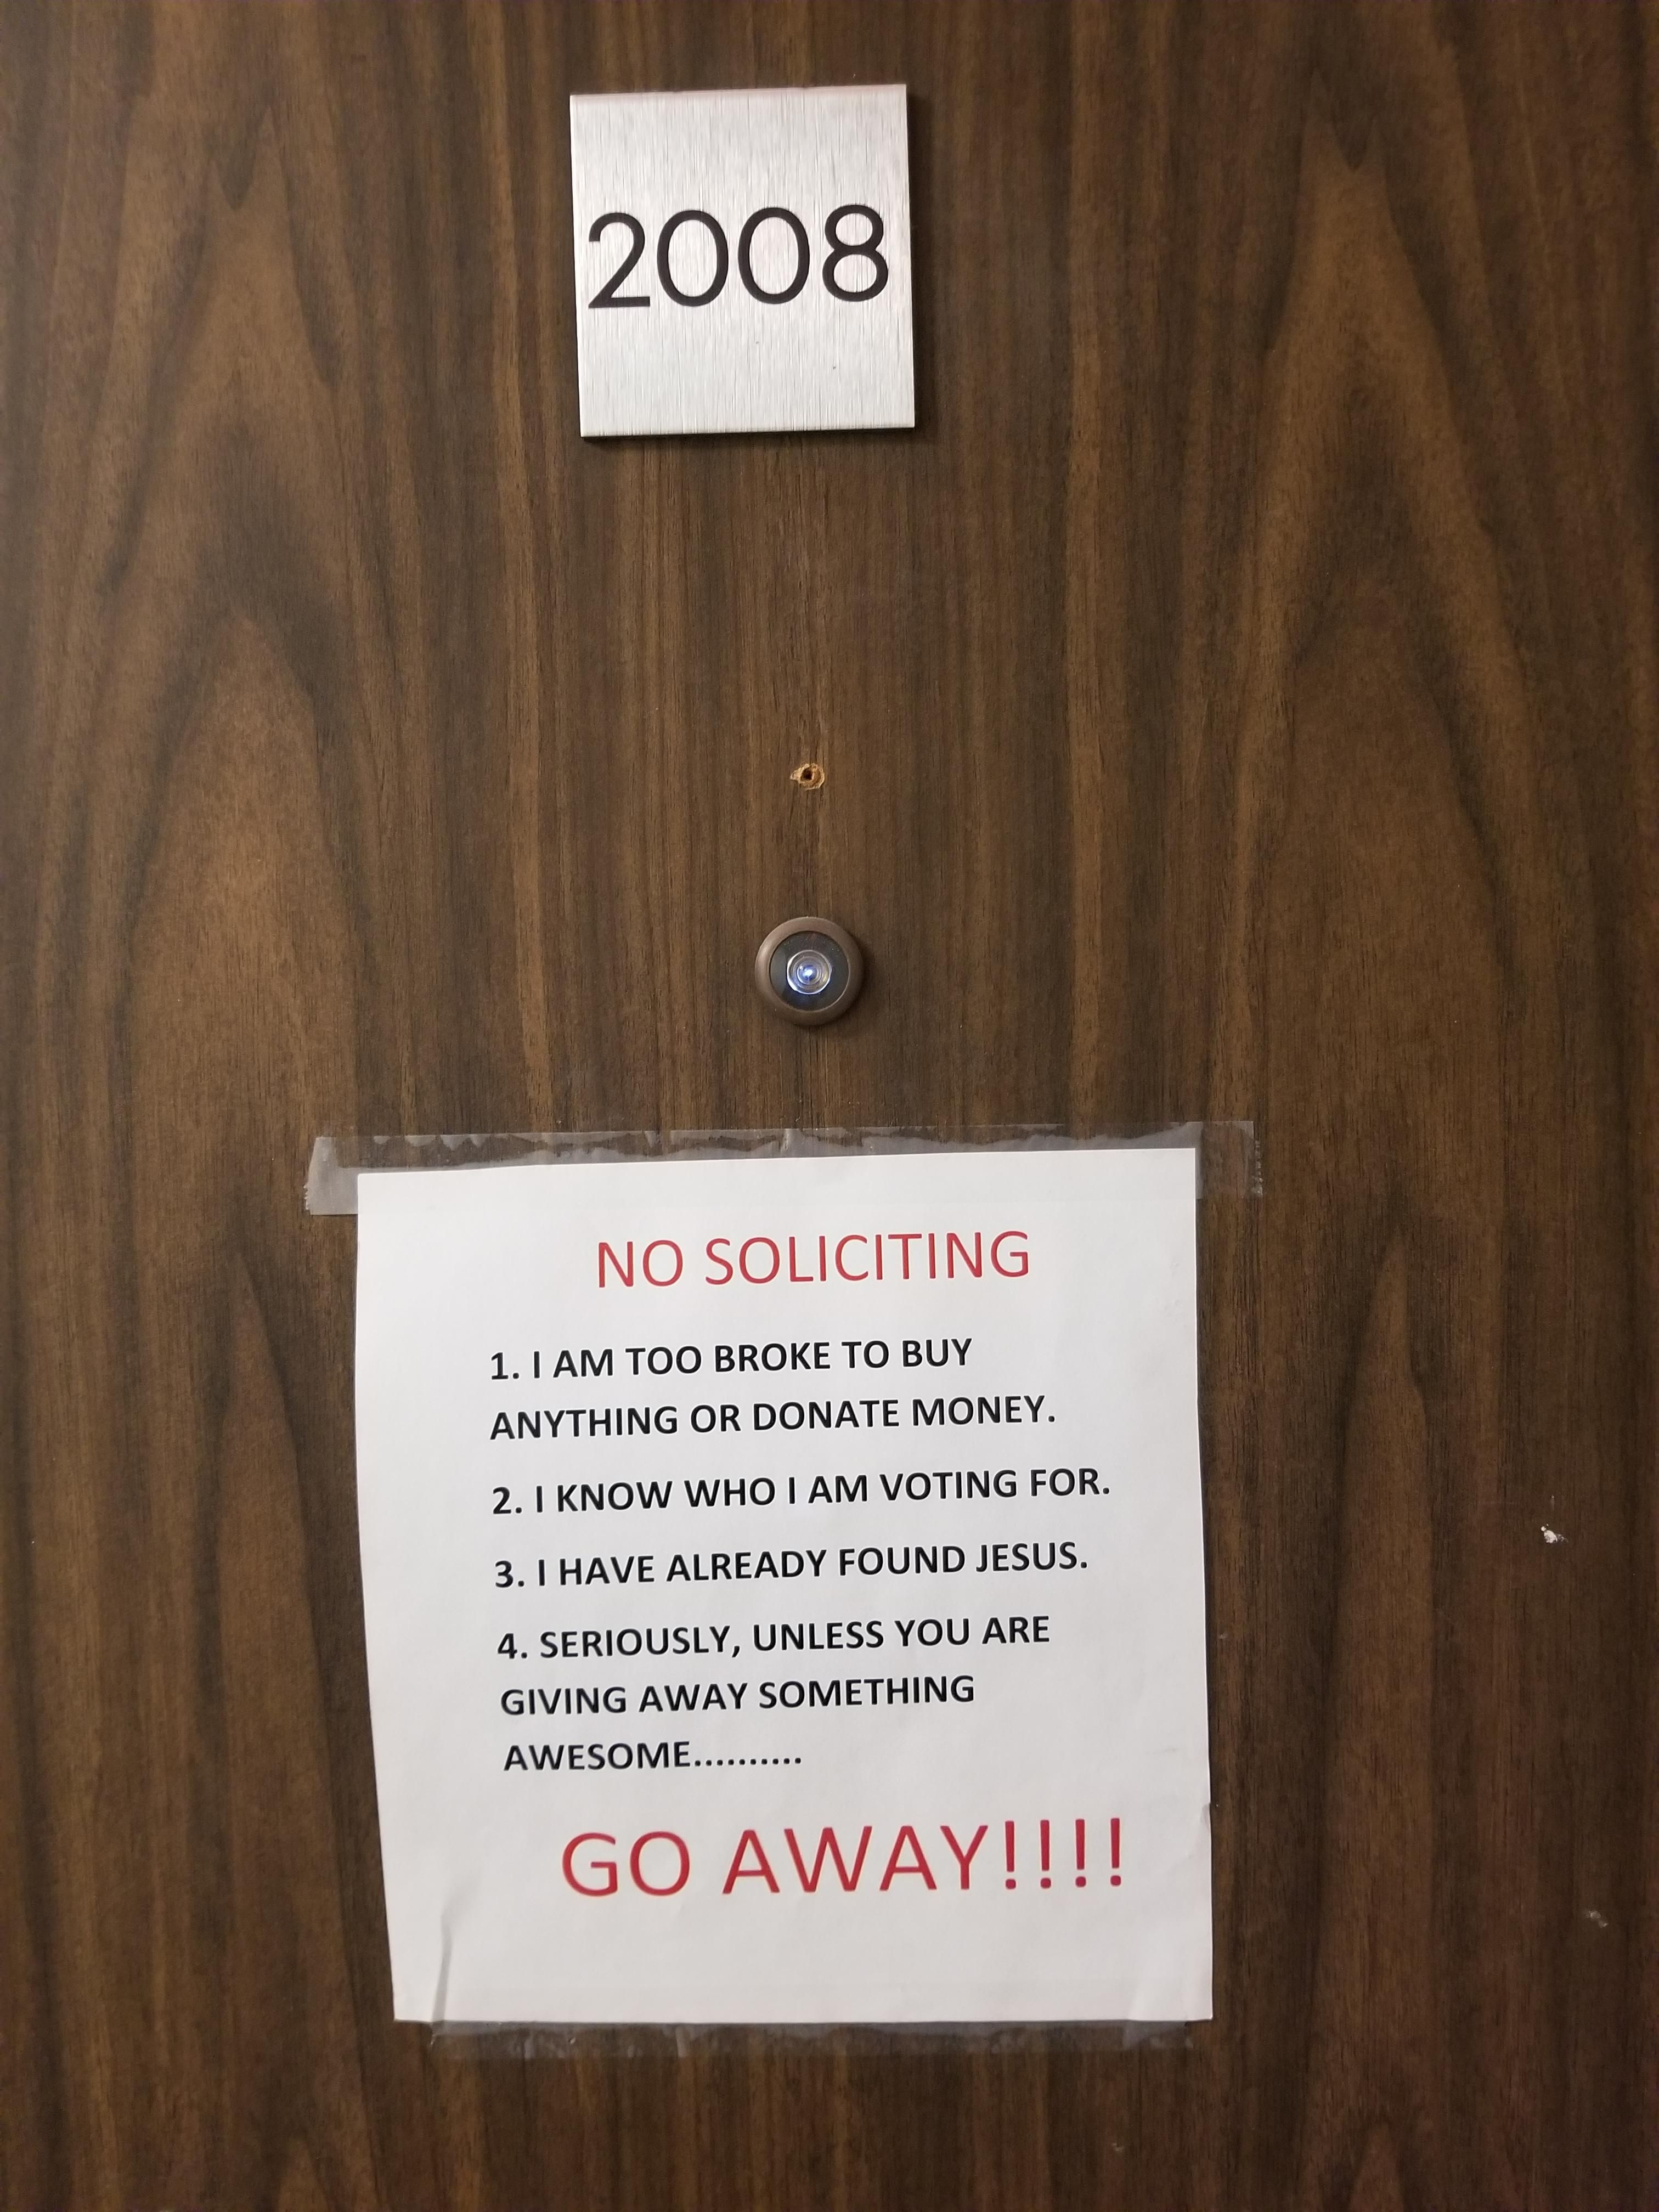 My neighbor posted this on their door